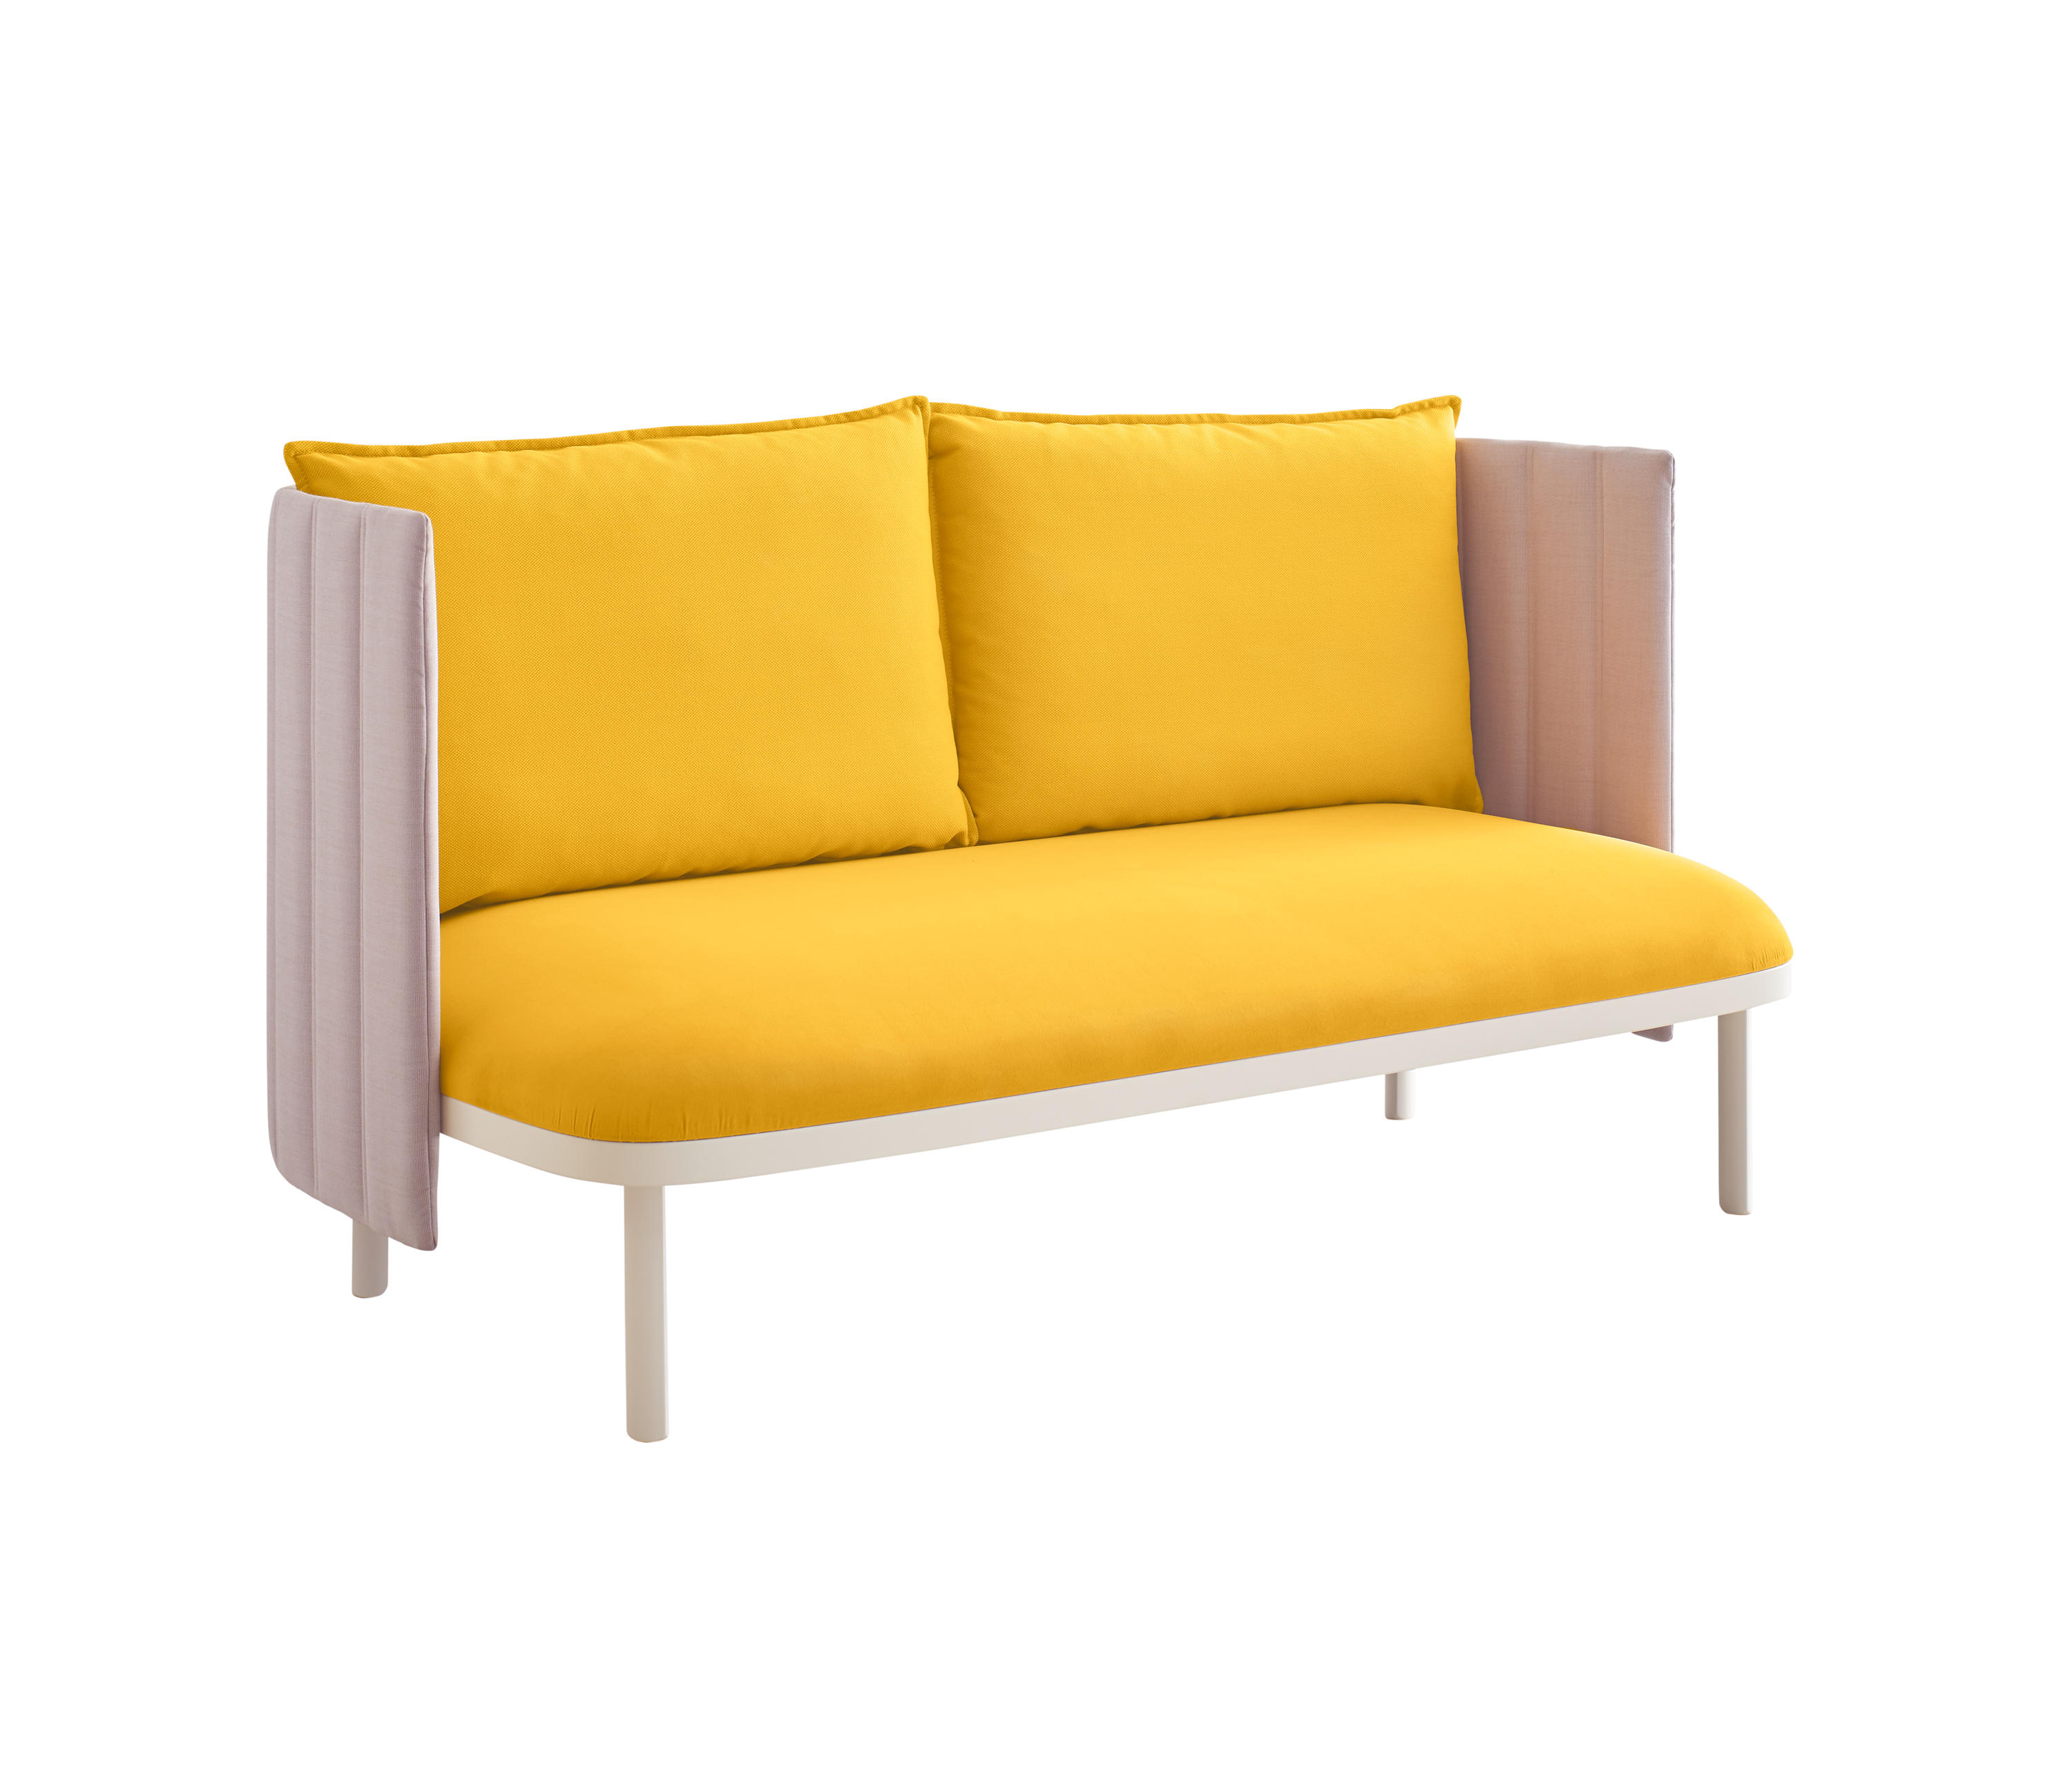 Paravent Niedrig Ophelis Sum Lounge Sofas From Ophelis Architonic